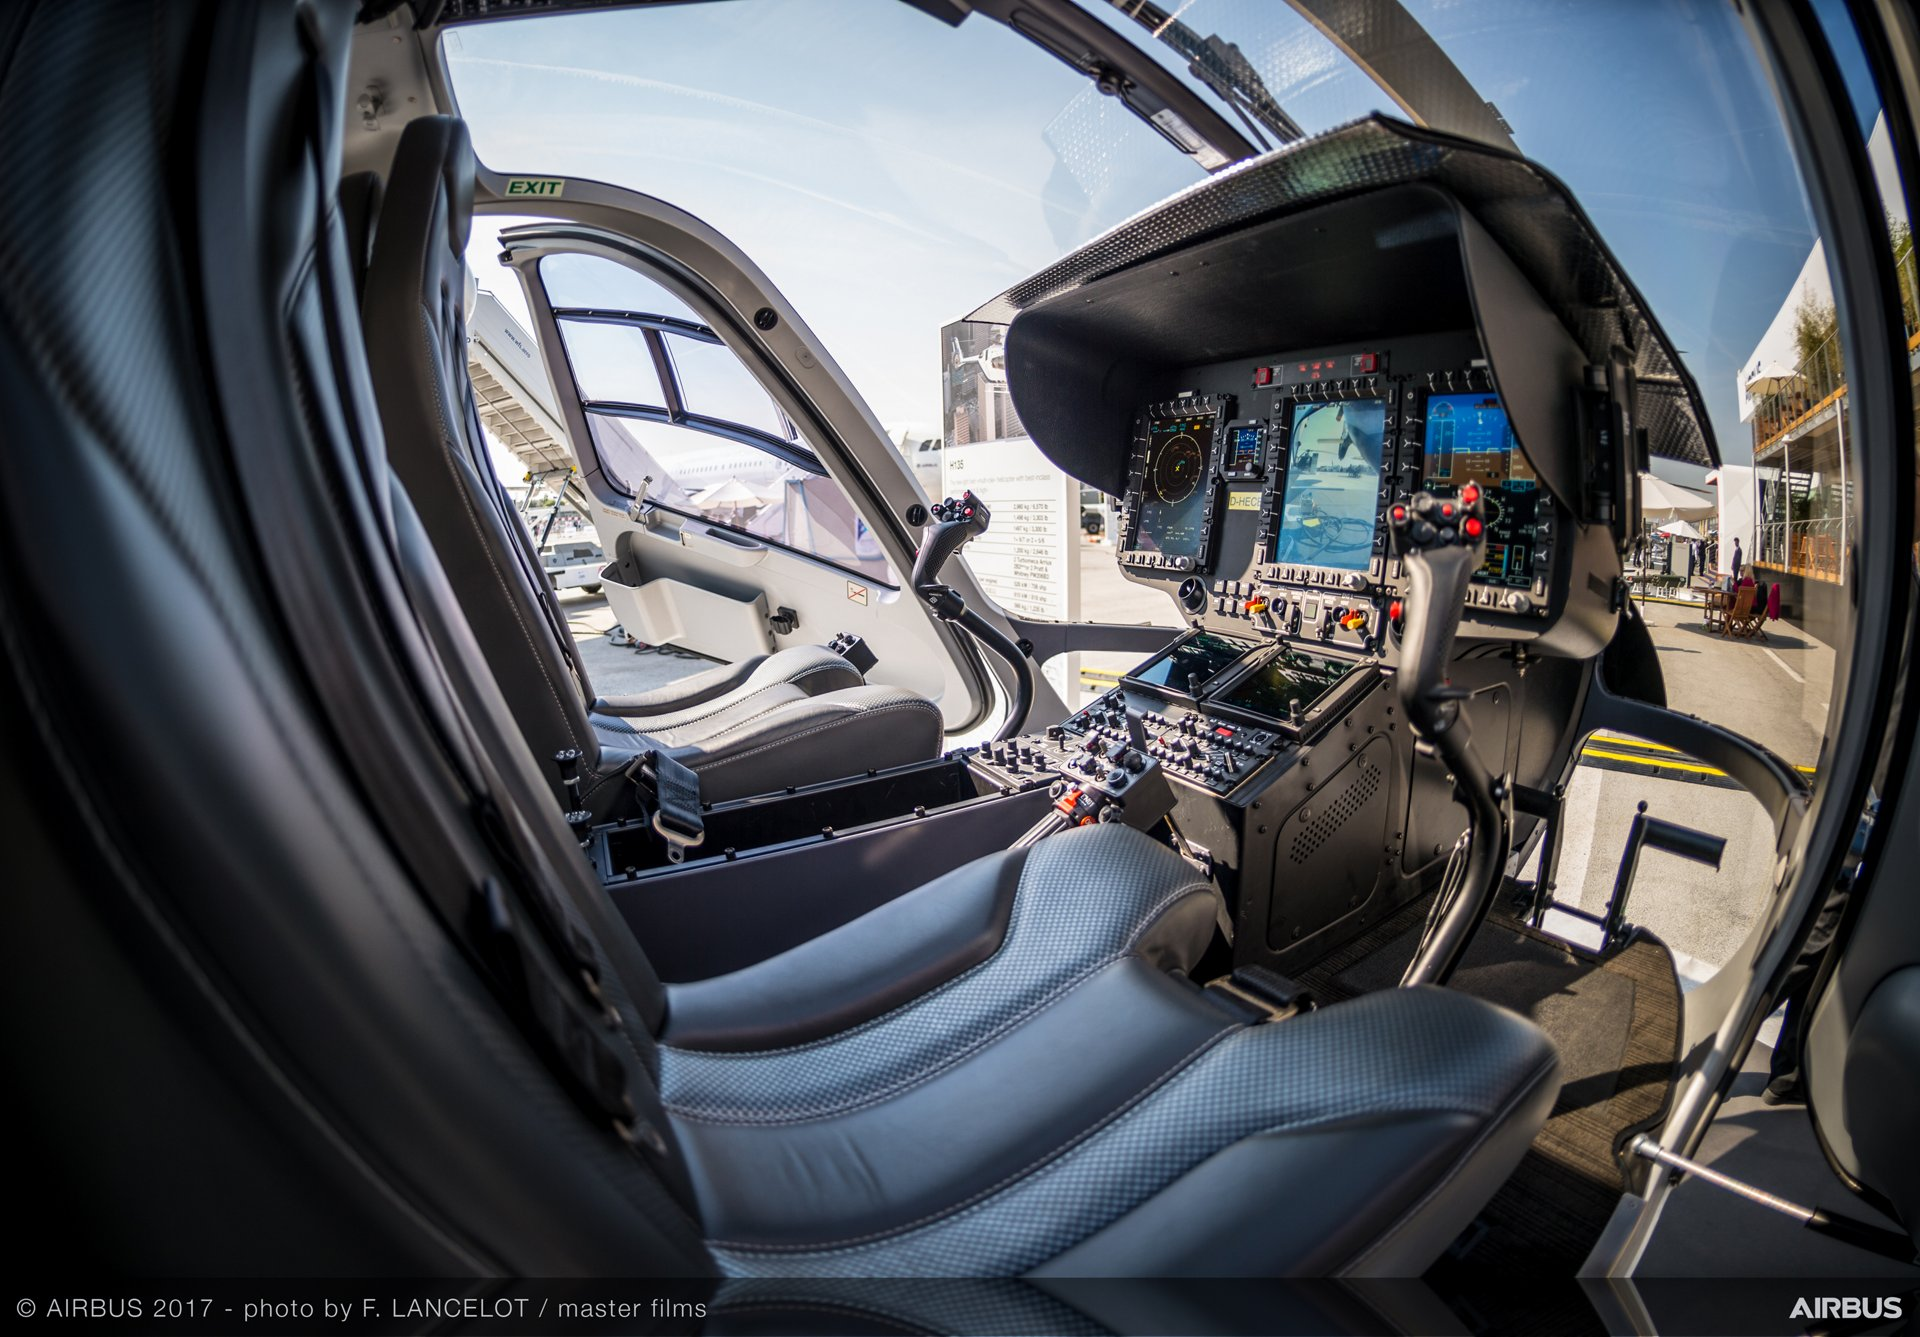 The H135, with its state-of-the-art cockpit for the highest levels of safety, receives attention at the 2017 Paris Air Show.